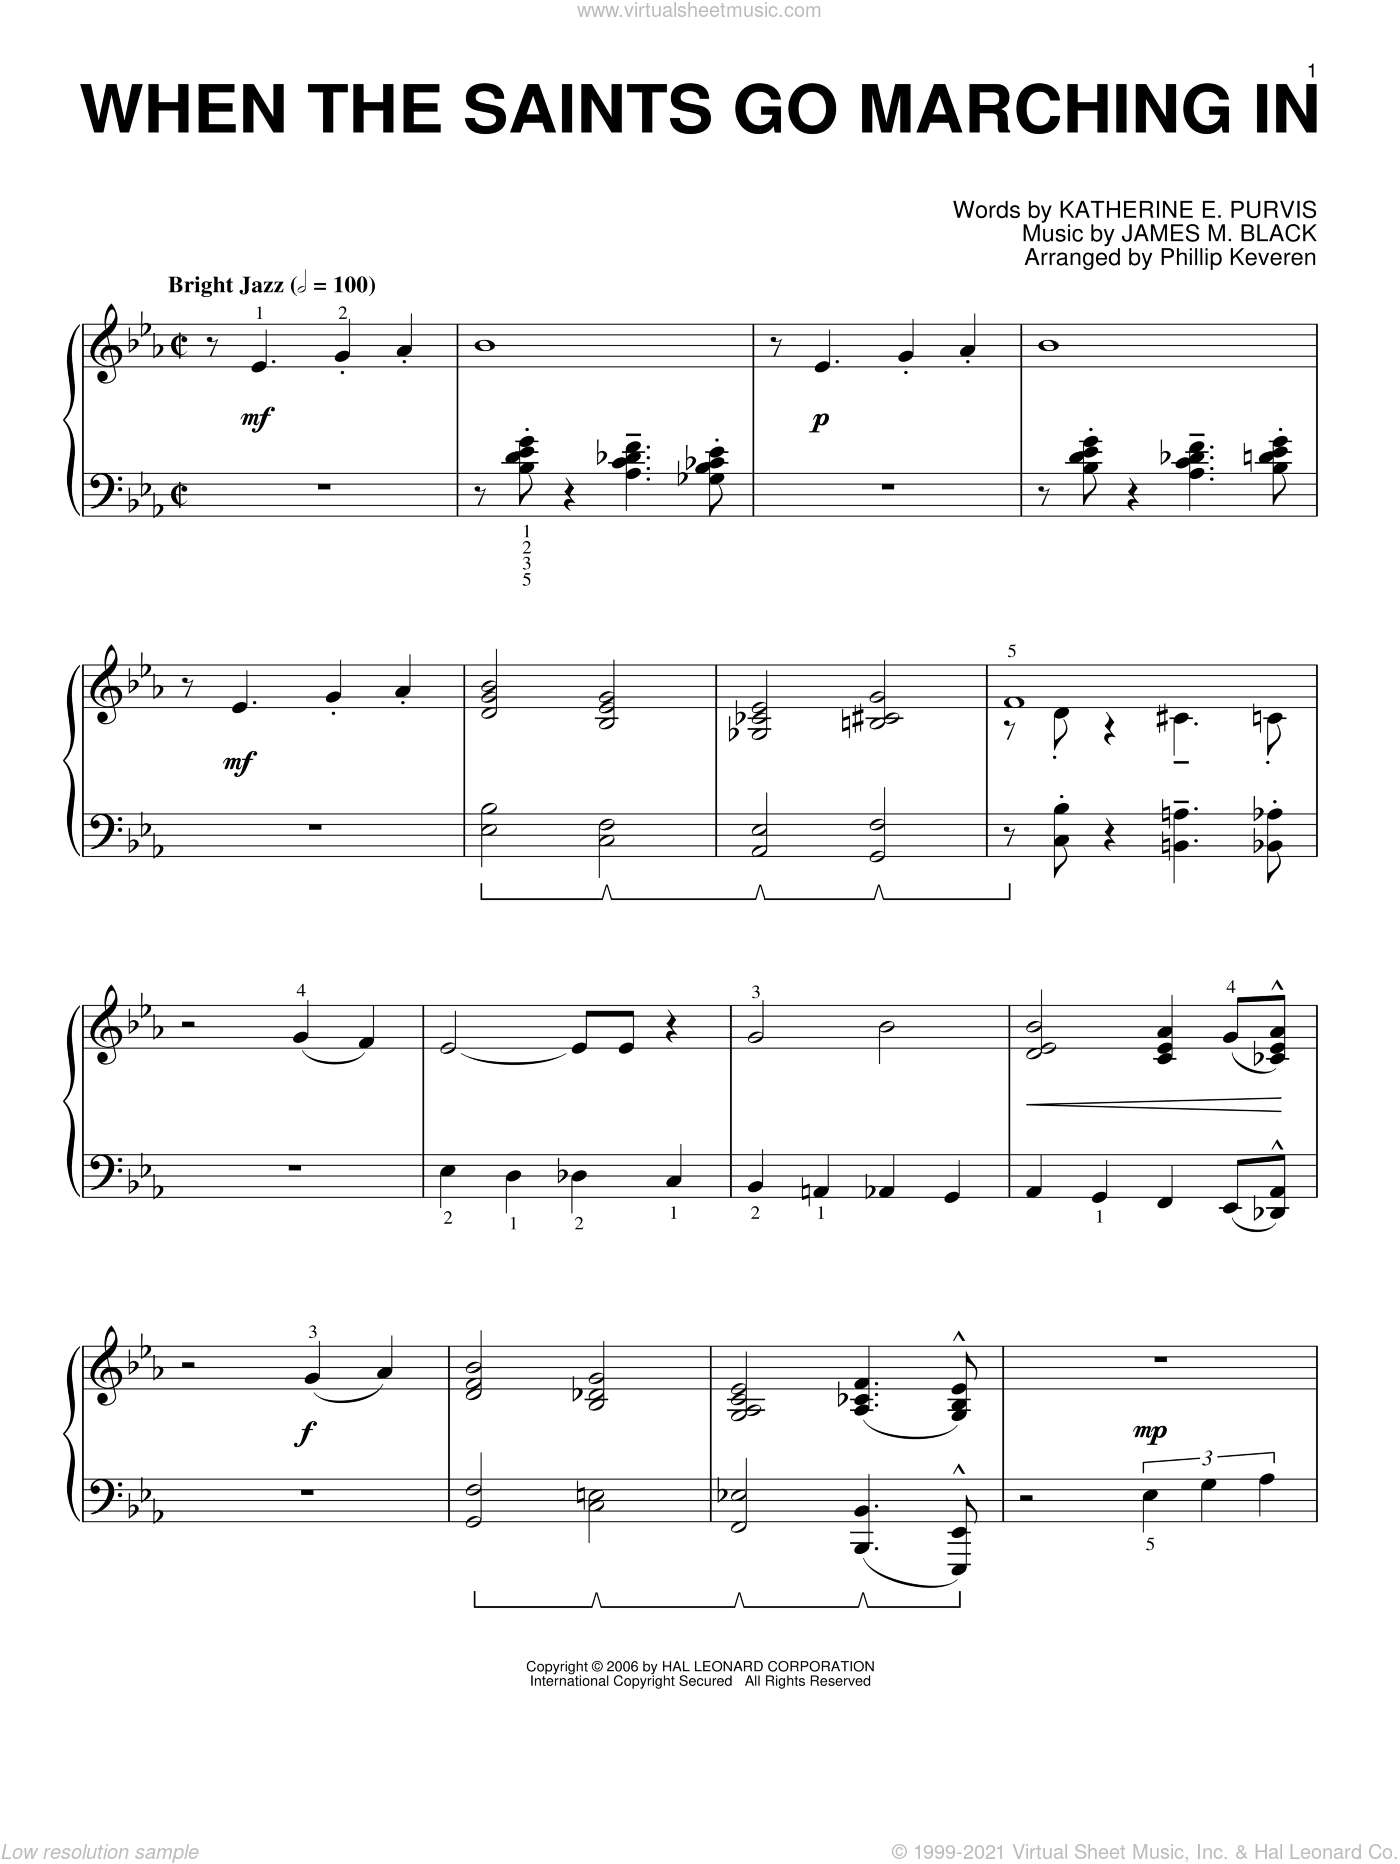 When The Saints Go Marching In sheet music for piano solo by Katherine E. Purvis, Phillip Keveren, Louis Armstrong and James M. Black. Score Image Preview.